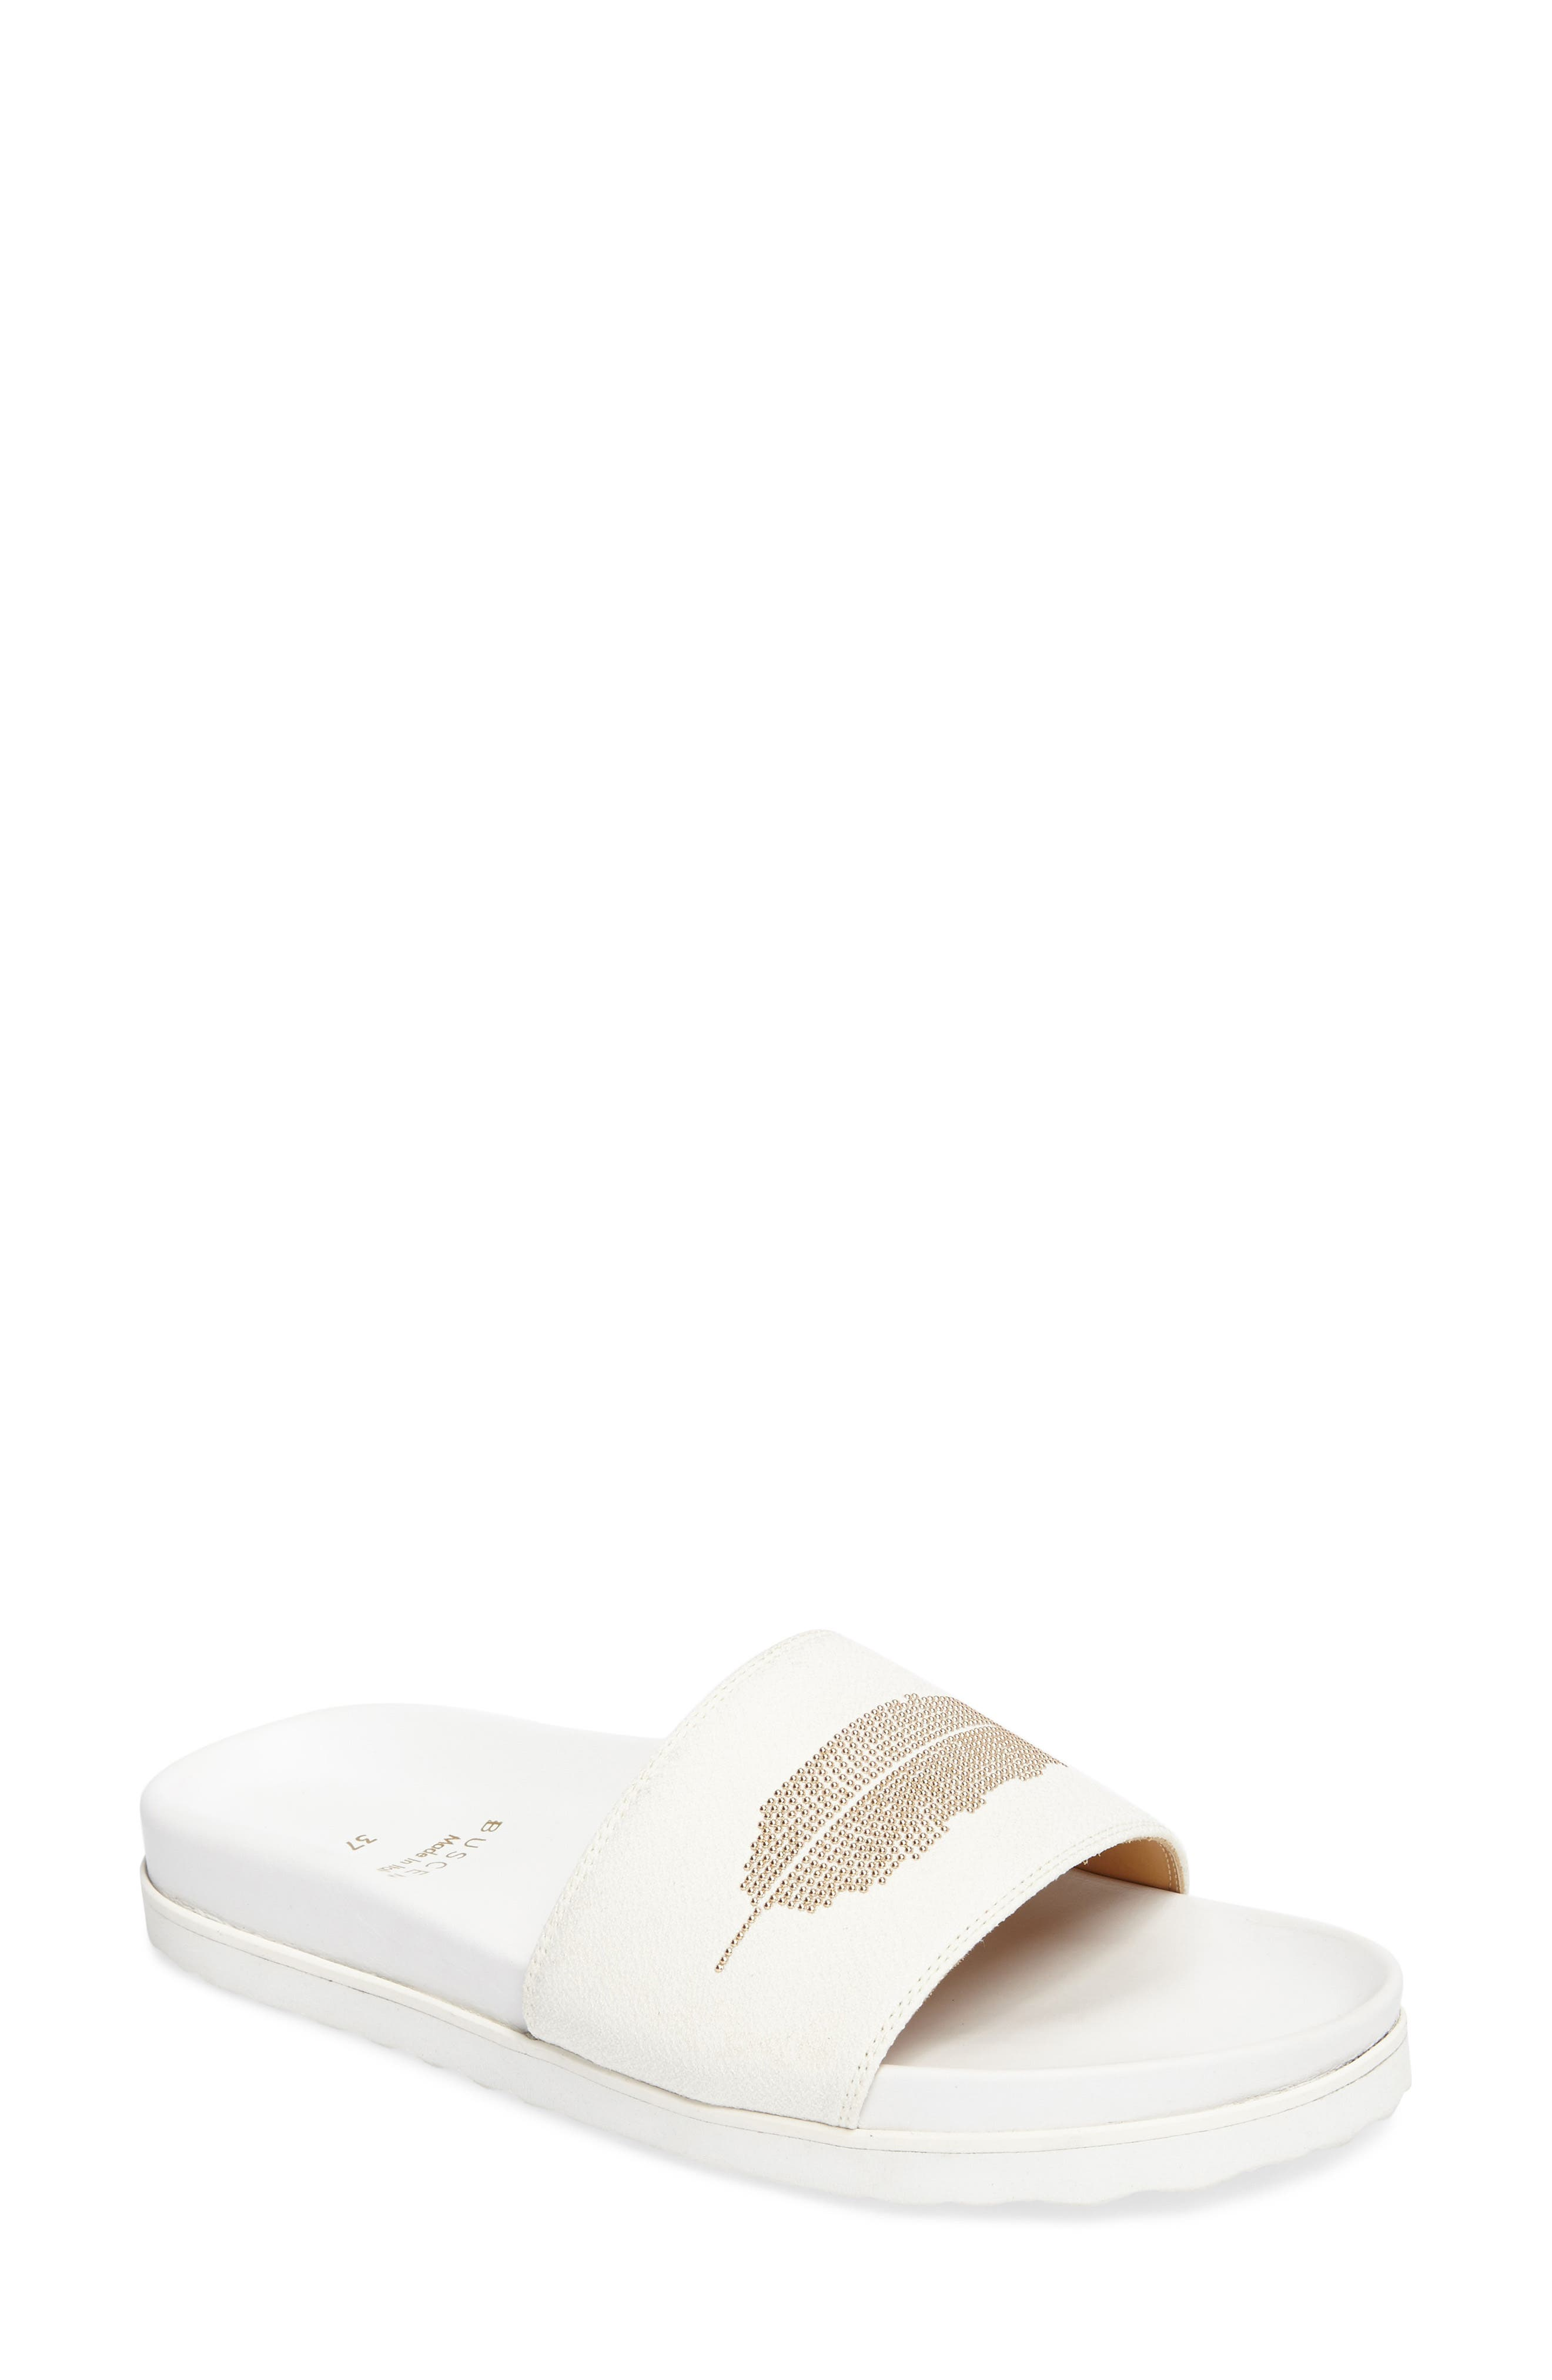 Crepone Feather Slide Sandal,                         Main,                         color, 100